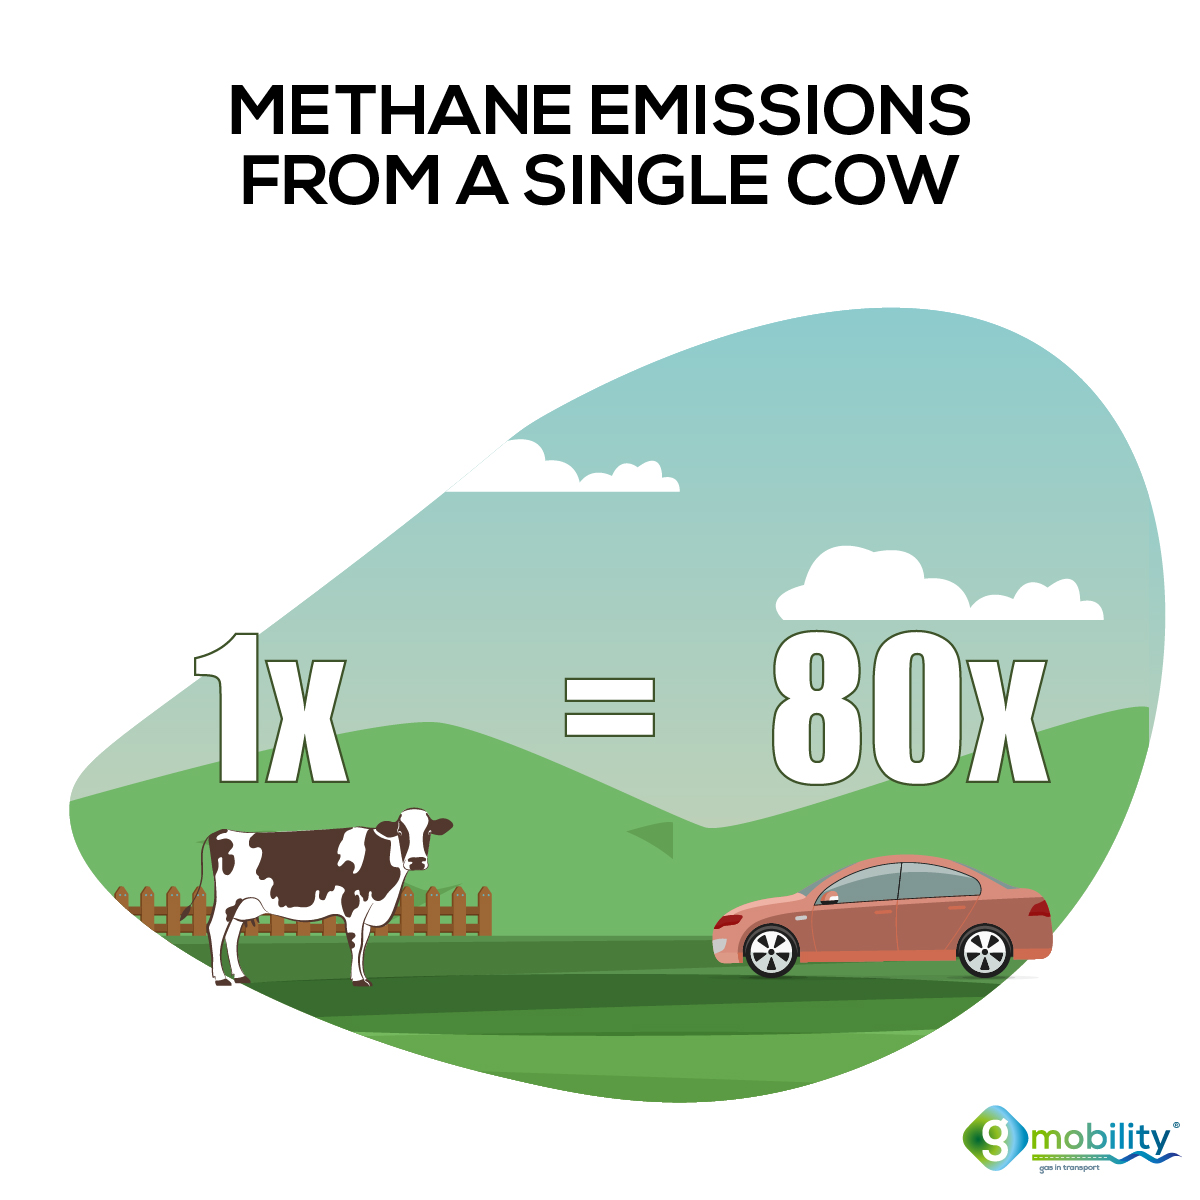 Our European cows emit as much as 1,920 Million NGVs.